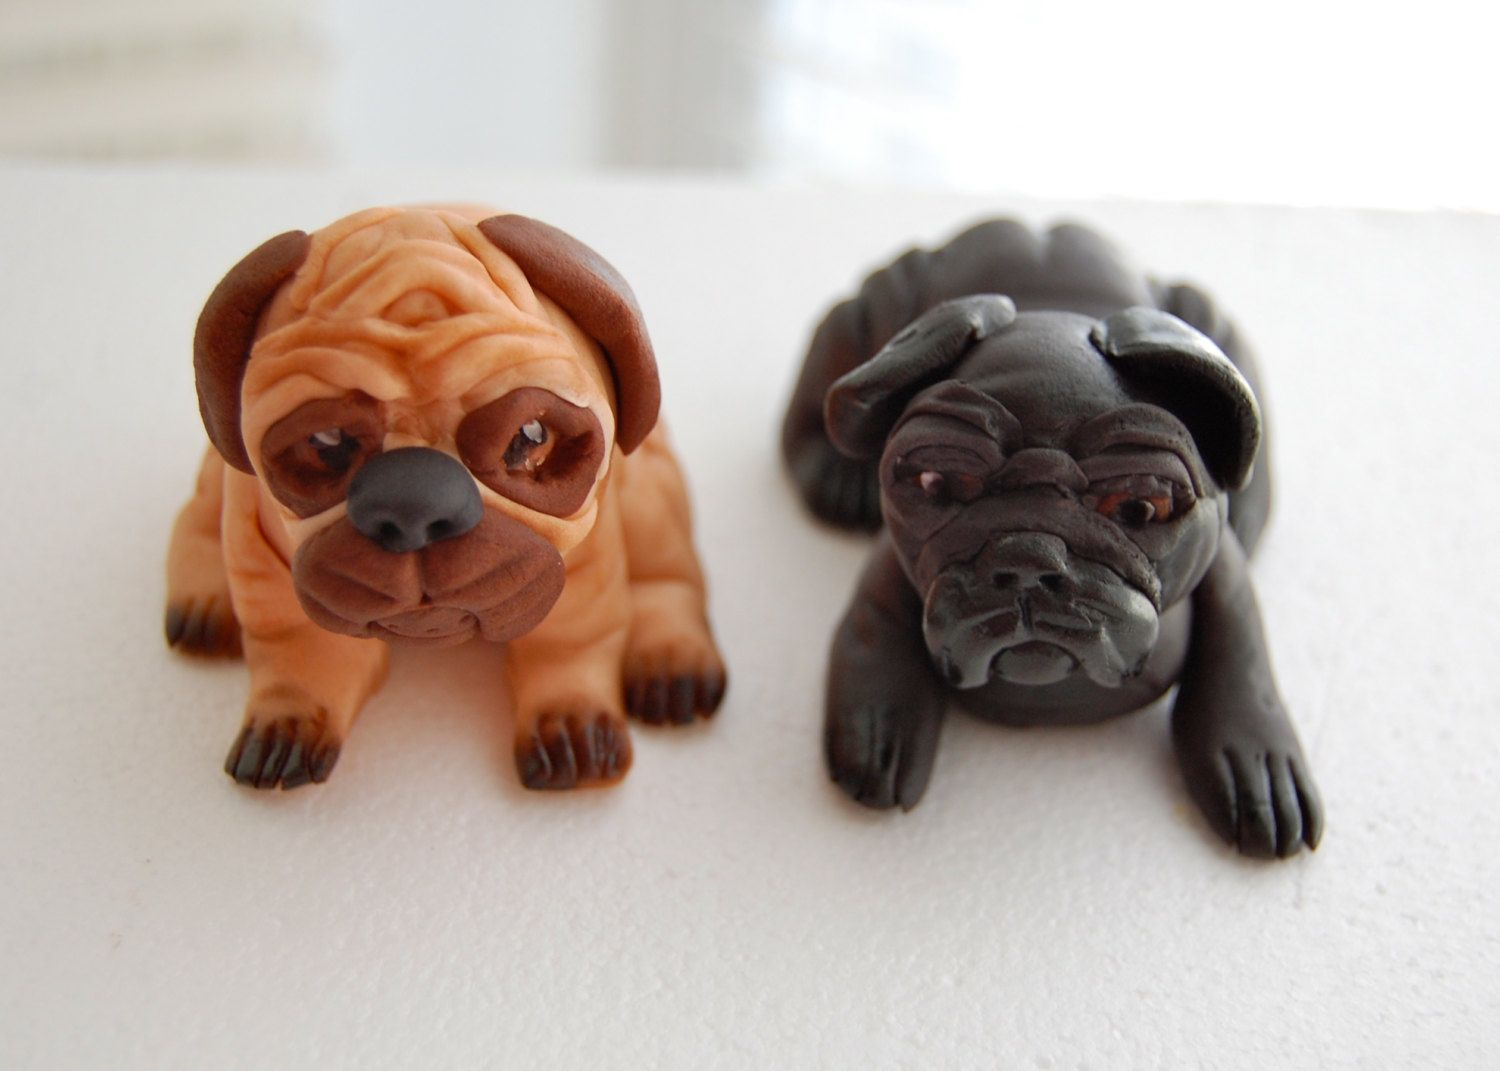 http://www.etsy.com/listing/124708409/fondant-pugs-cake-topper?ref=shop_home_active